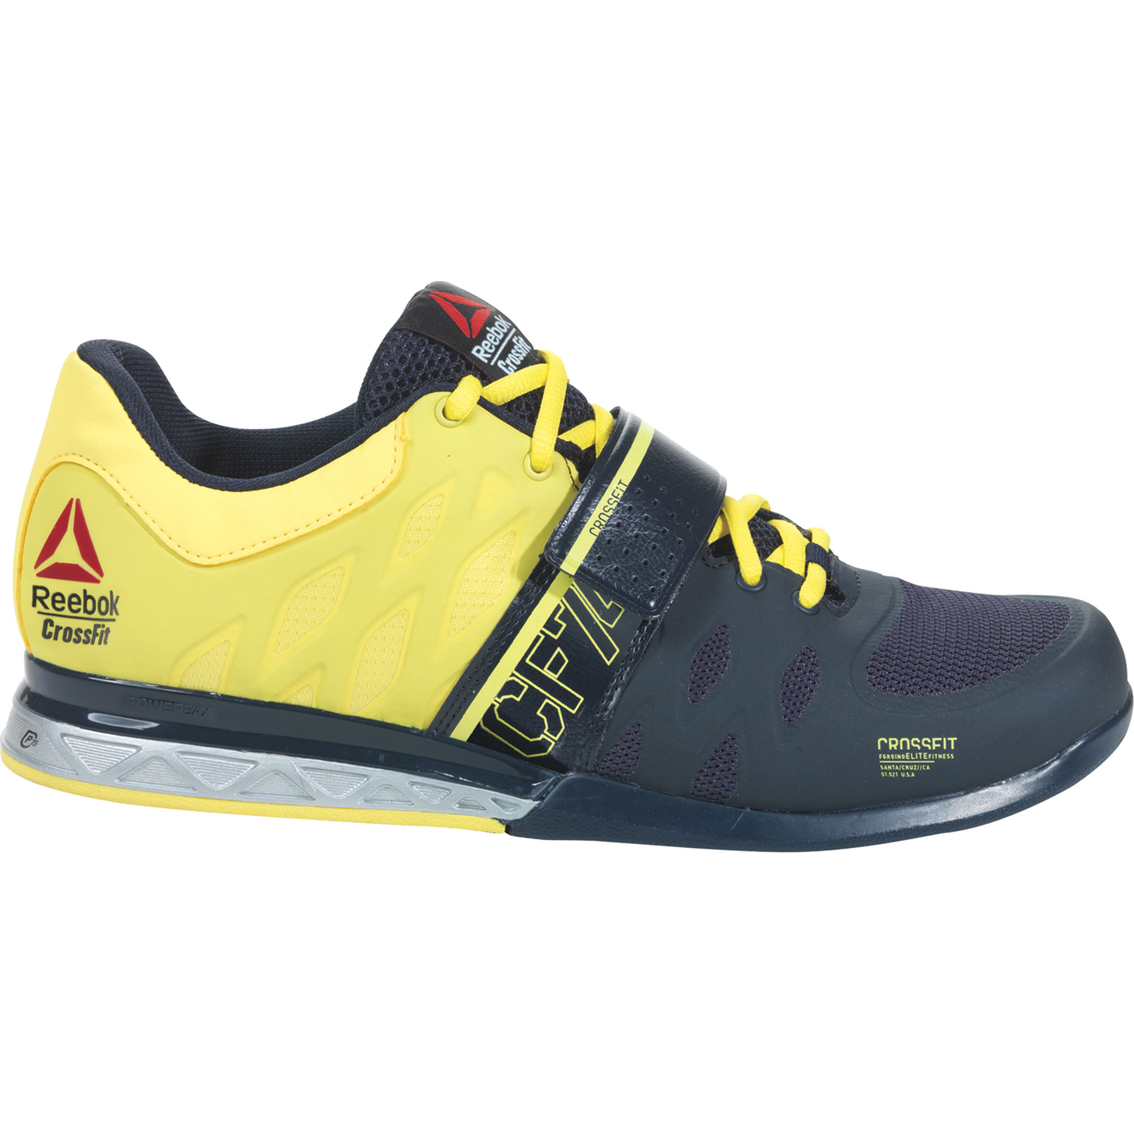 Womens Wide Crossfit Shoes